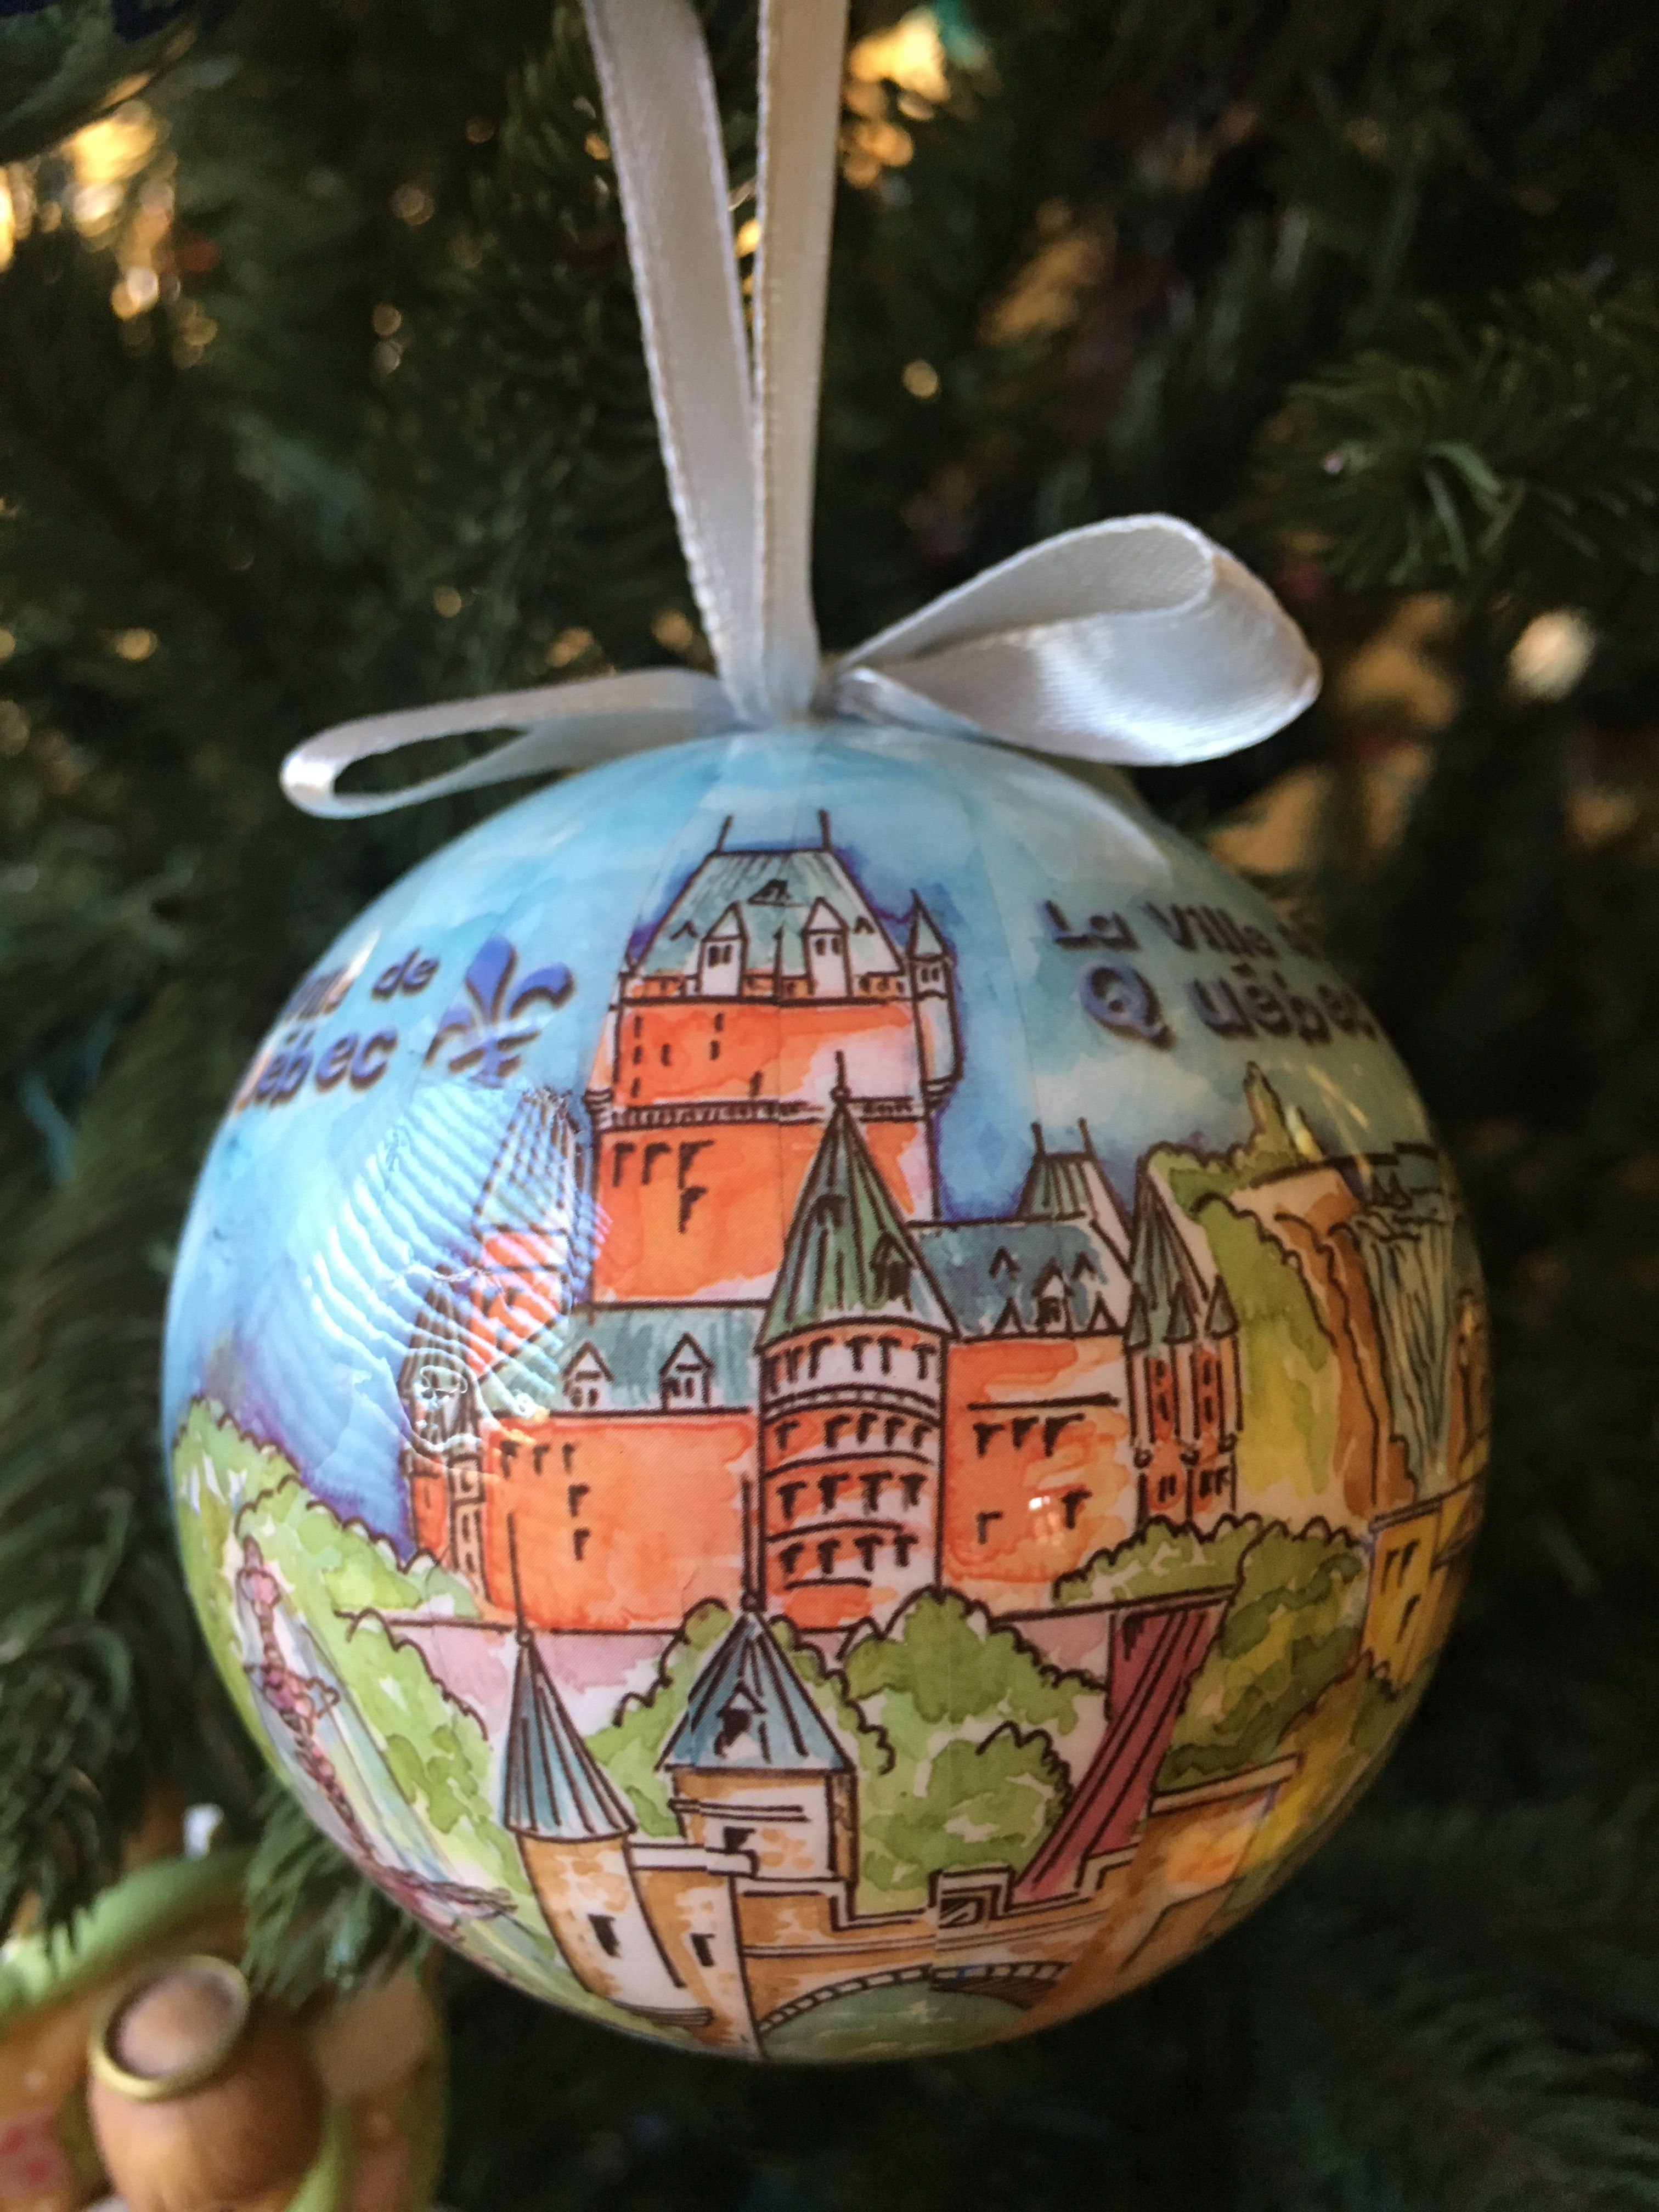 Quebec,canada (With images) Christmas ornaments